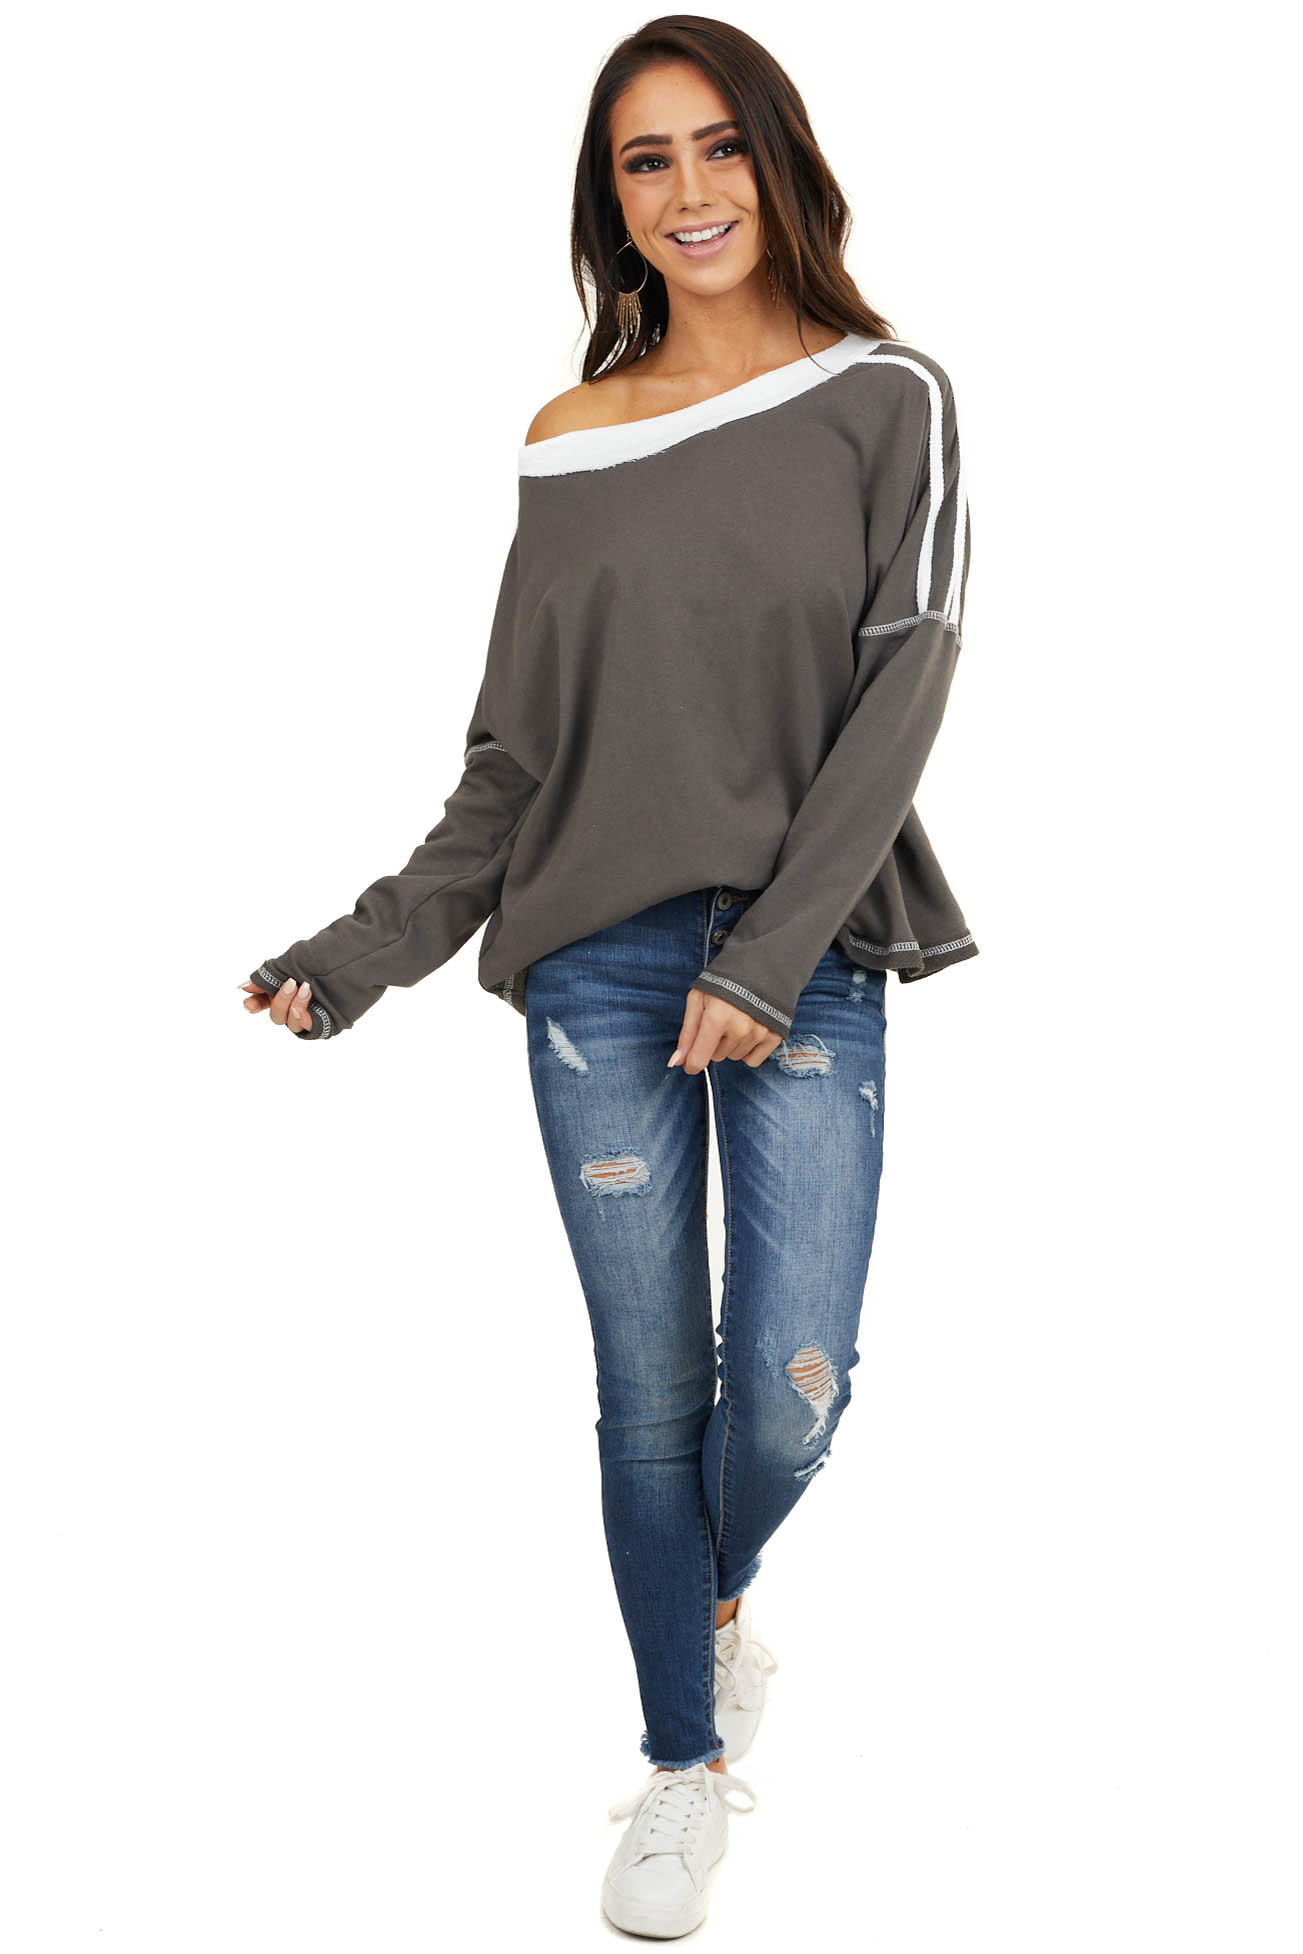 Charcoal and Ivory Long Sleeve Top with Stitching Detail